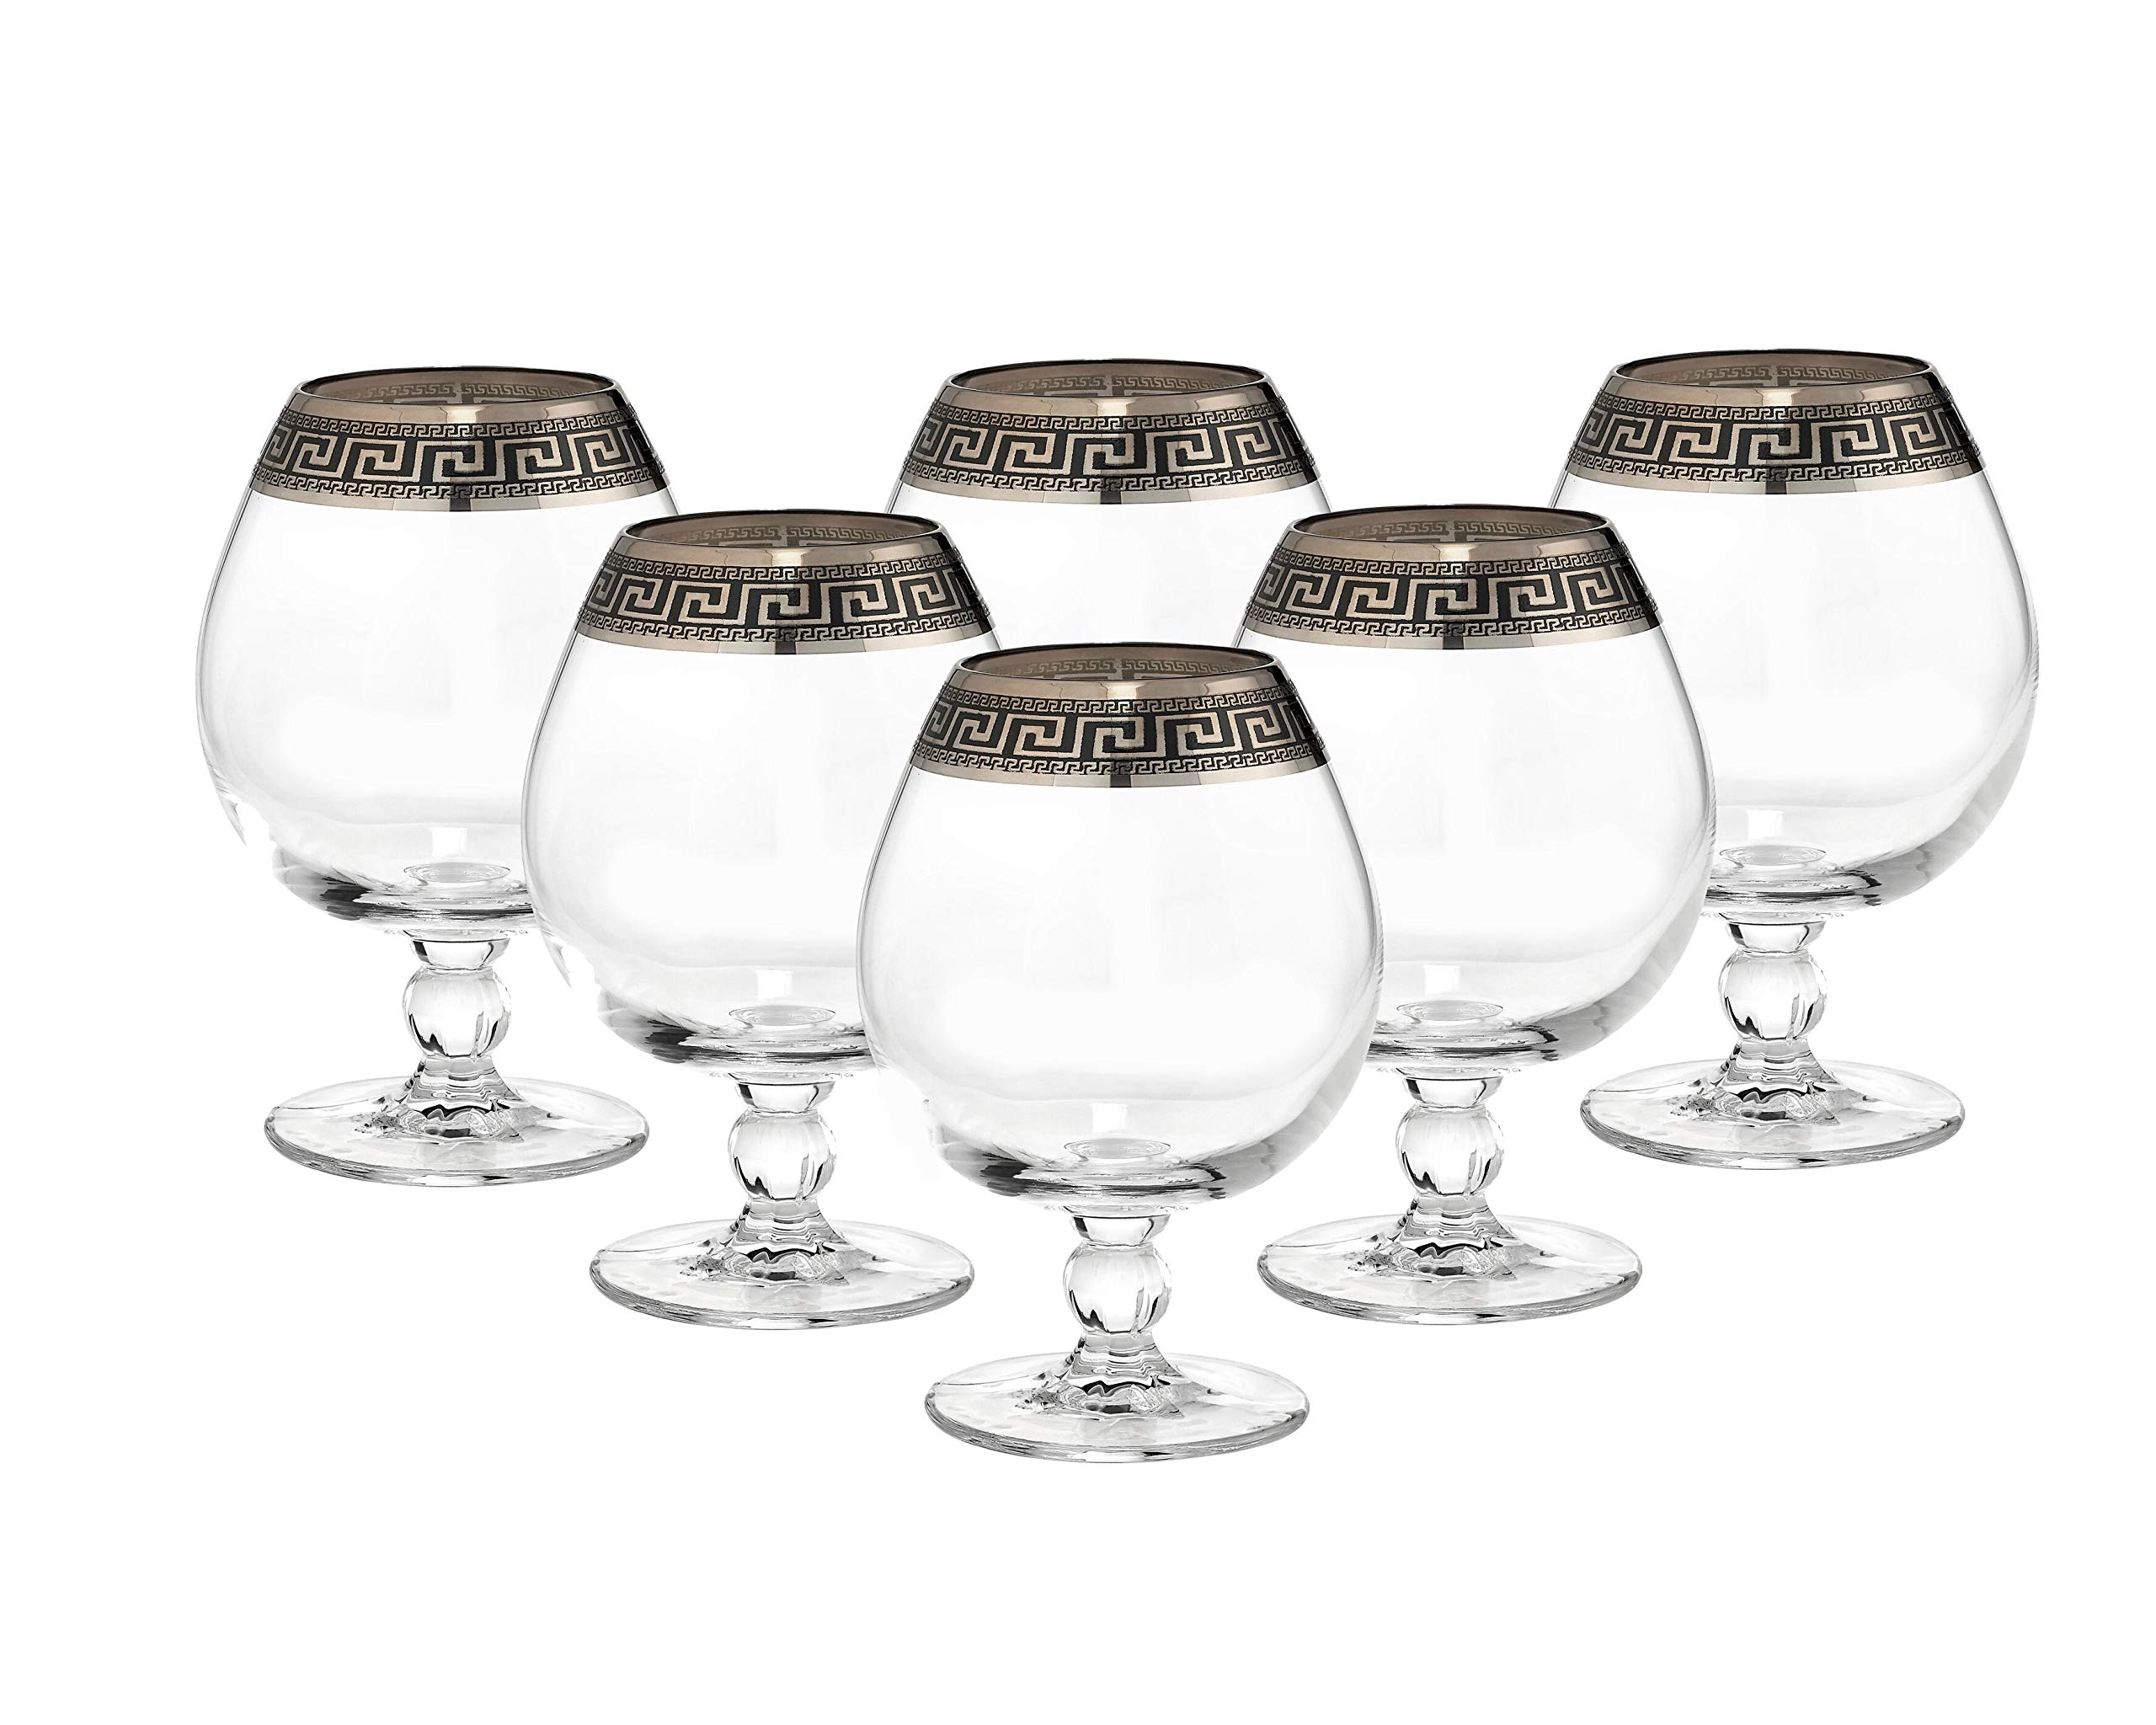 ''Cristalleria Italian Decor'' Crystal Cognac Brandy Snifter Goblet, 17 oz. Silver Platinum Greek Key Ornament, Hand Made in Italy, SET OF 6 Glasses by Cristalleria Italian Decor